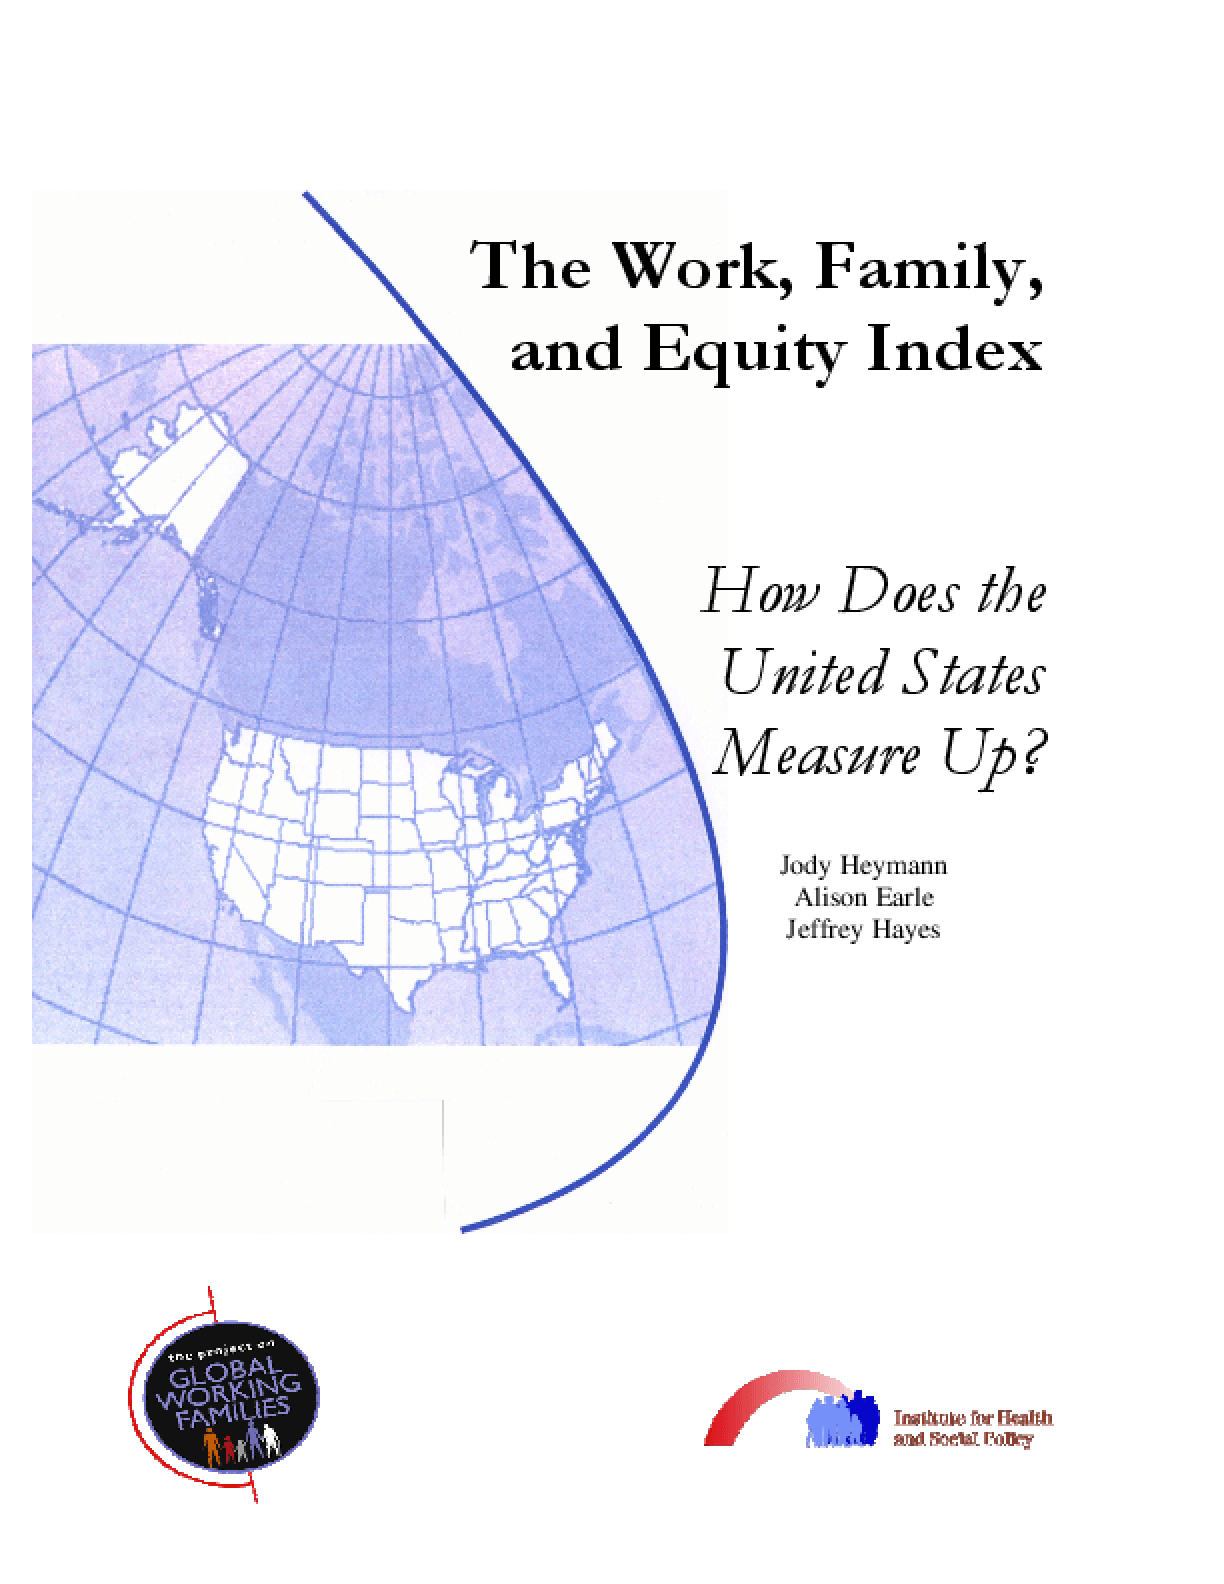 The Work, Family, and Equity Index: How Does the United States Measure Up